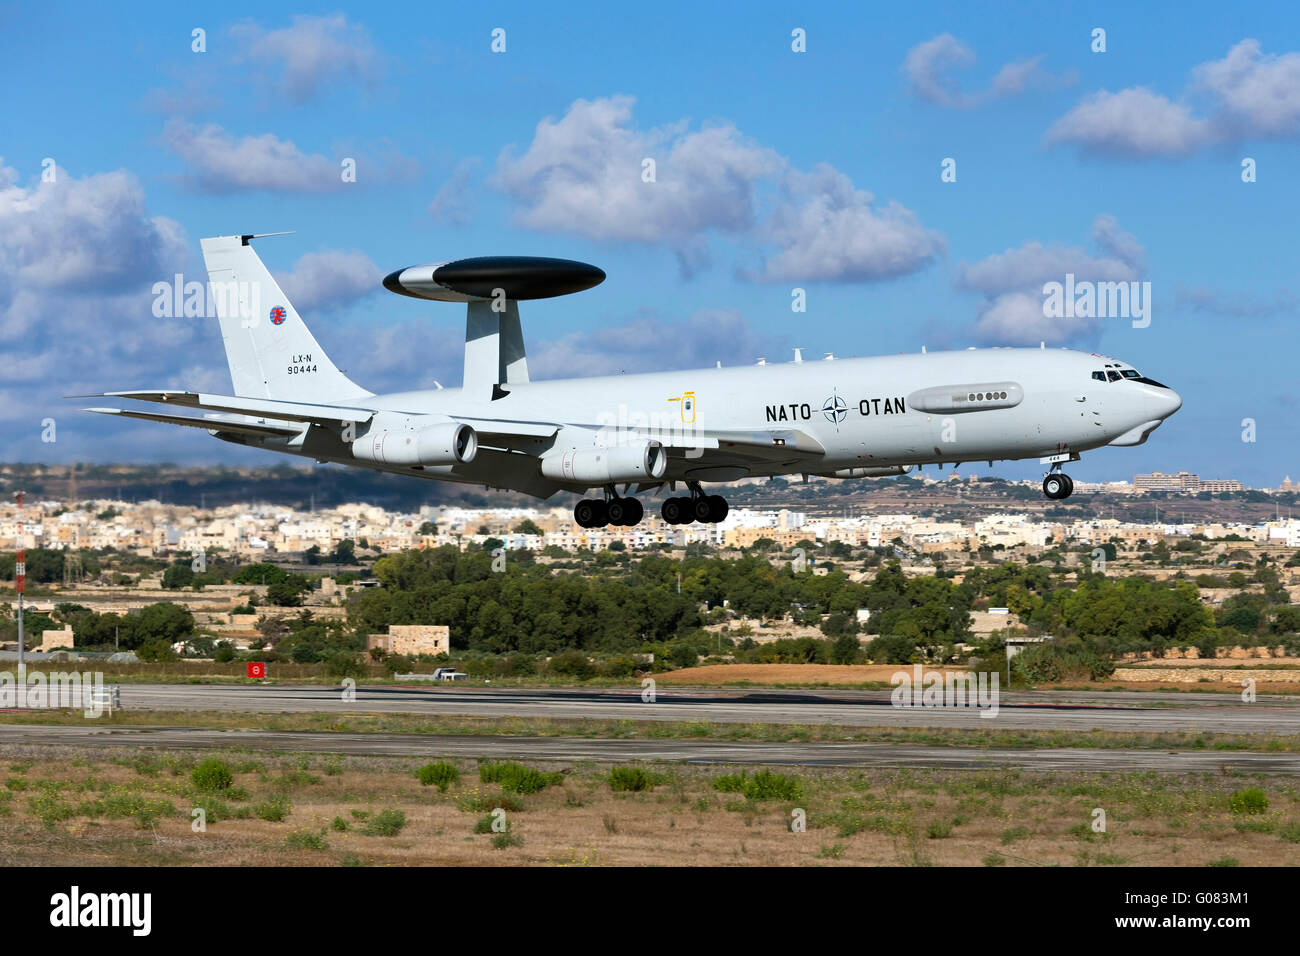 Luxembourg NATO Boeing E-3A Sentry (707-300) on departure after having participated in the Airshow during the previous - Stock Image